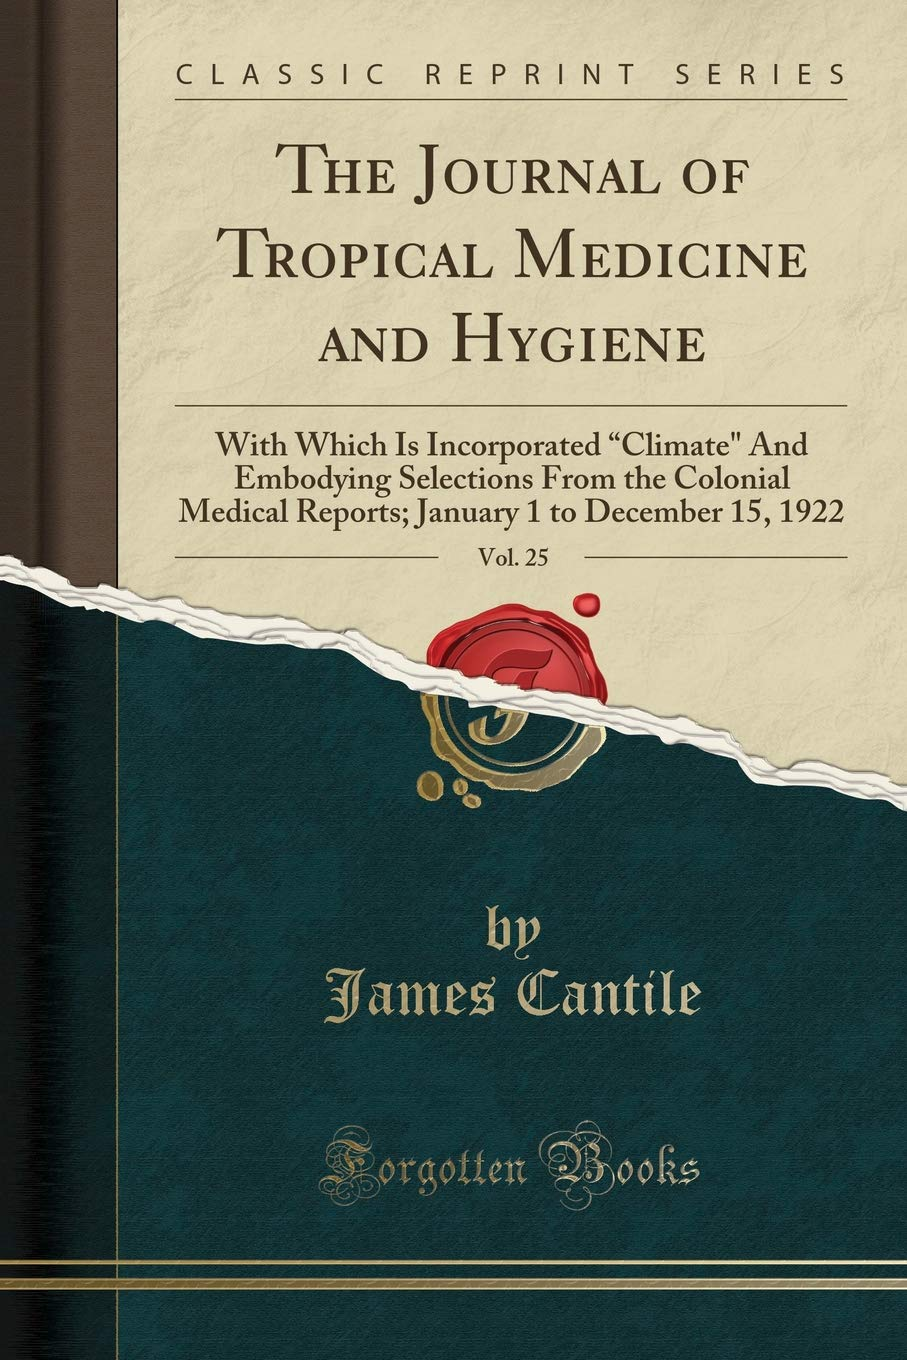 """Download The Journal of Tropical Medicine and Hygiene, Vol. 25: With Which Is Incorporated """"Climate"""" And Embodying Selections From the Colonial Medical Reports; January 1 to December 15, 1922 (Classic Reprint) PDF"""